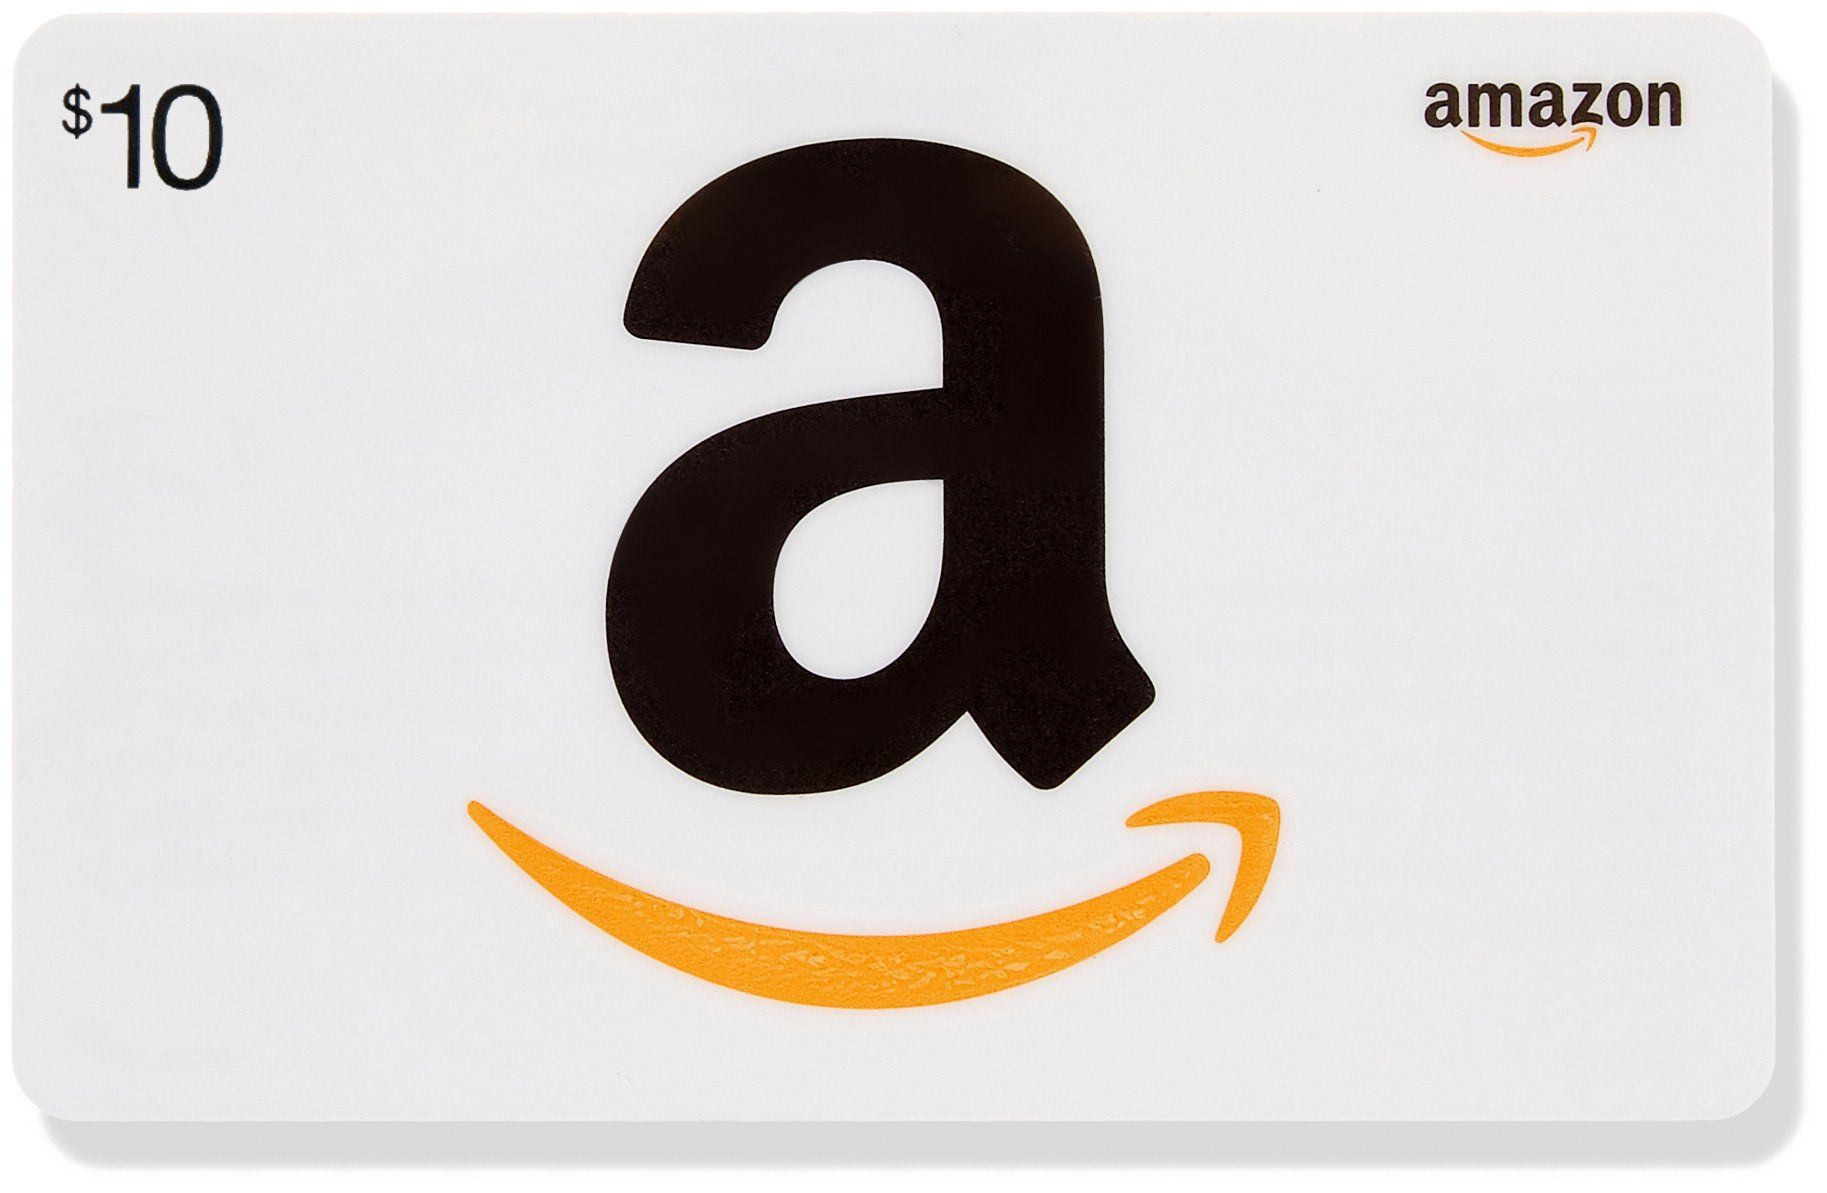 how to get free amazon gift cards uk